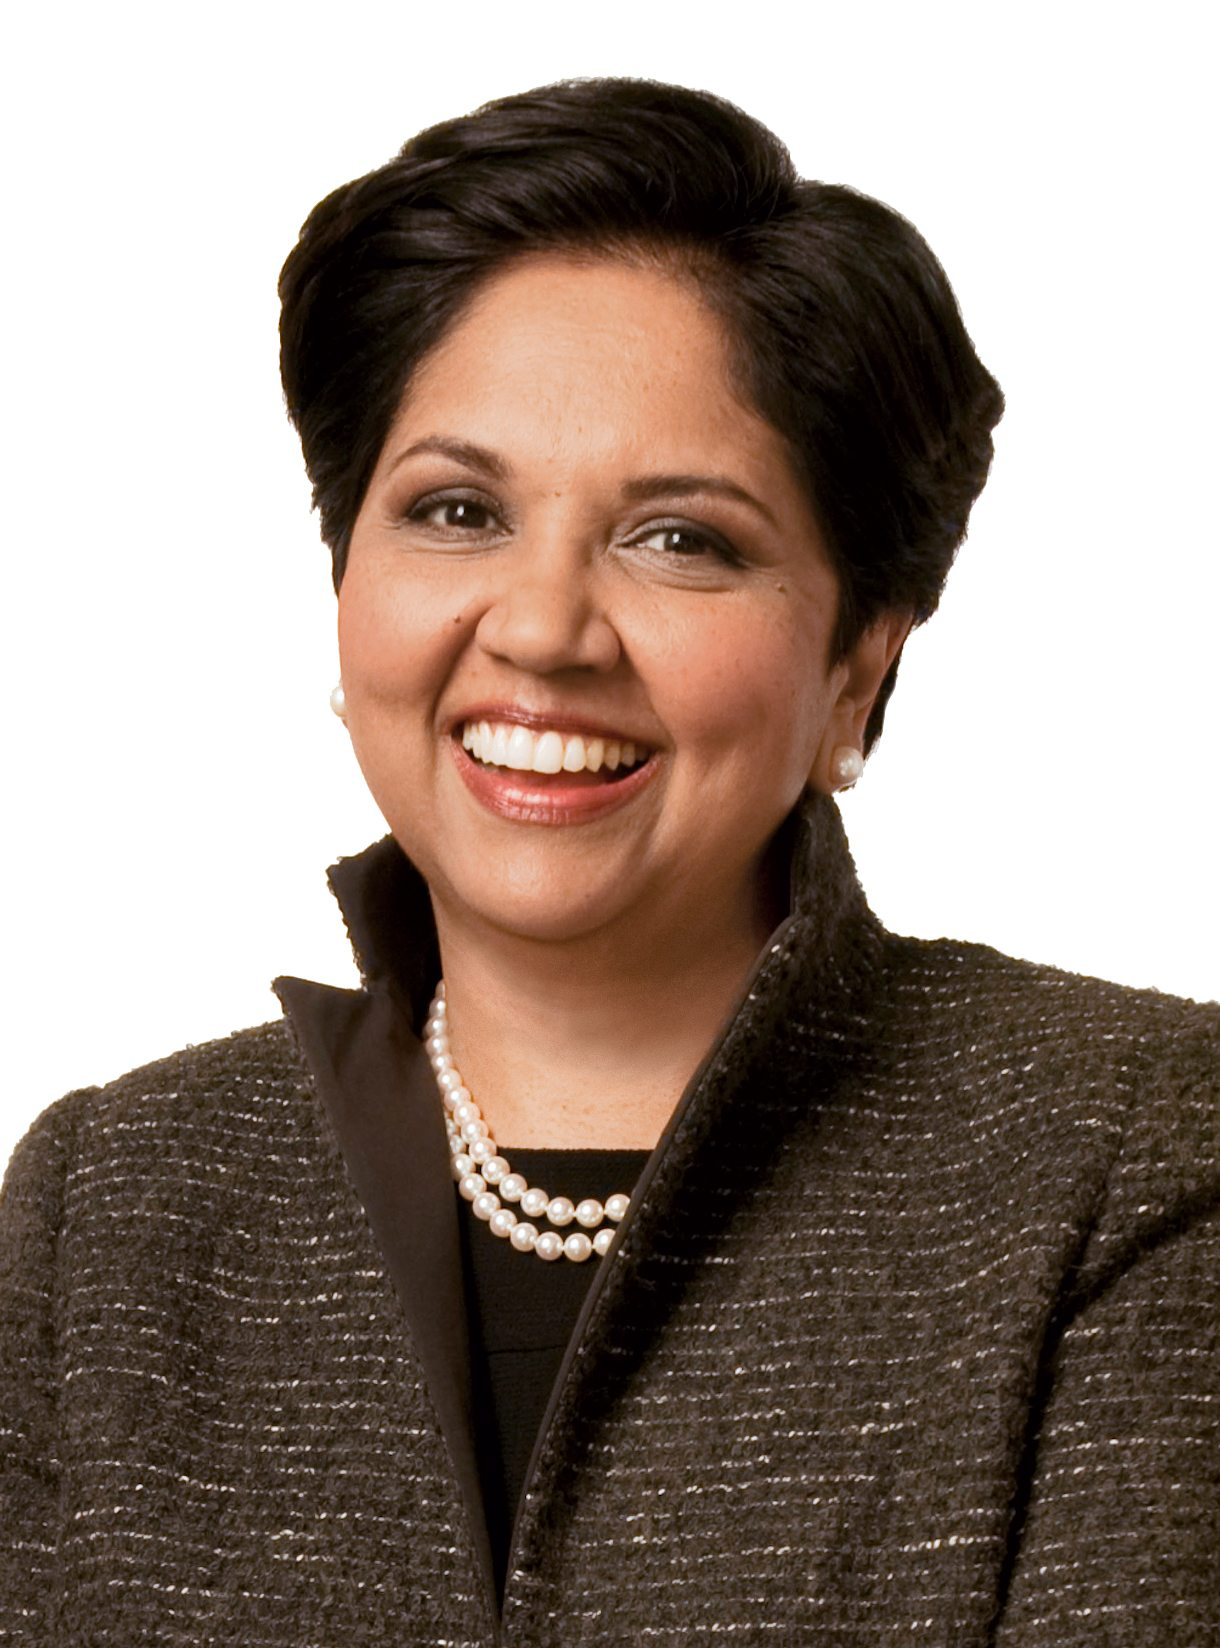 Indra Nooyi on Balance - Susie Orman Schnall 4e1ff604e